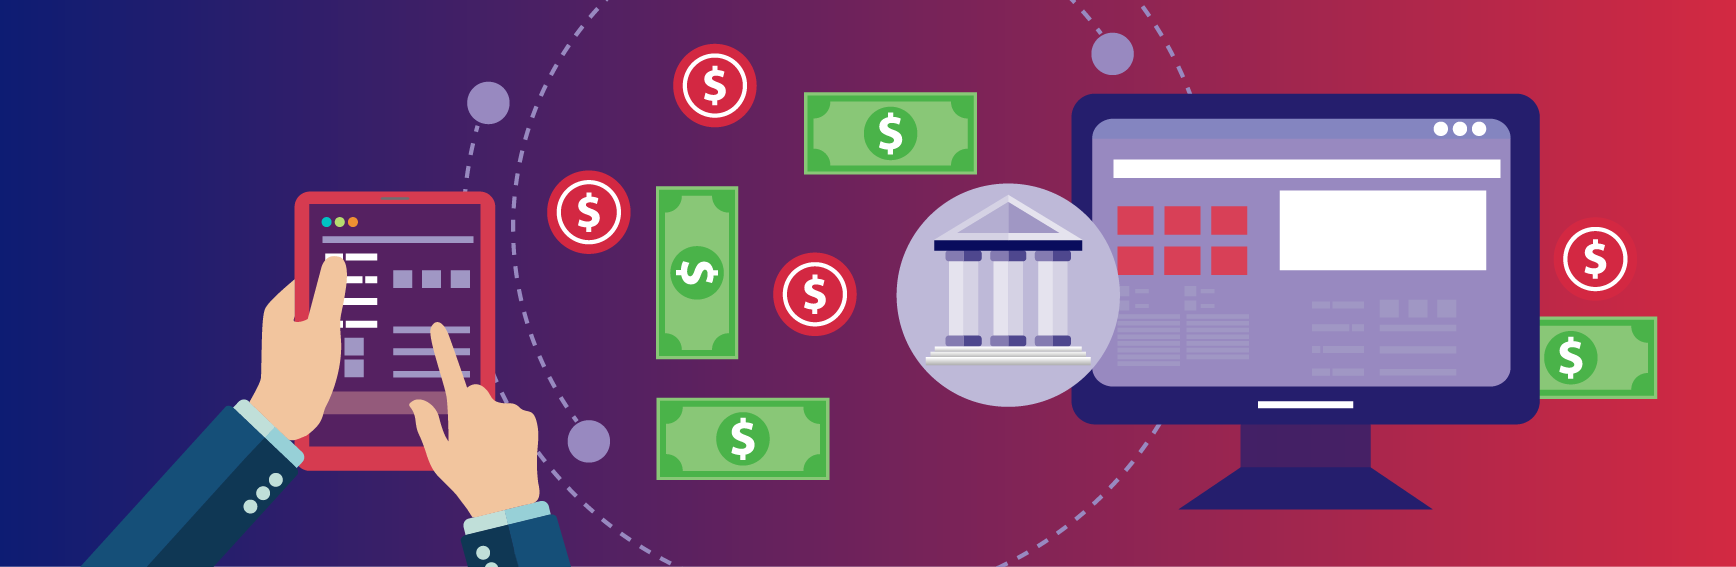 Digital banking makes bill pay, deposits, and money management a cinch